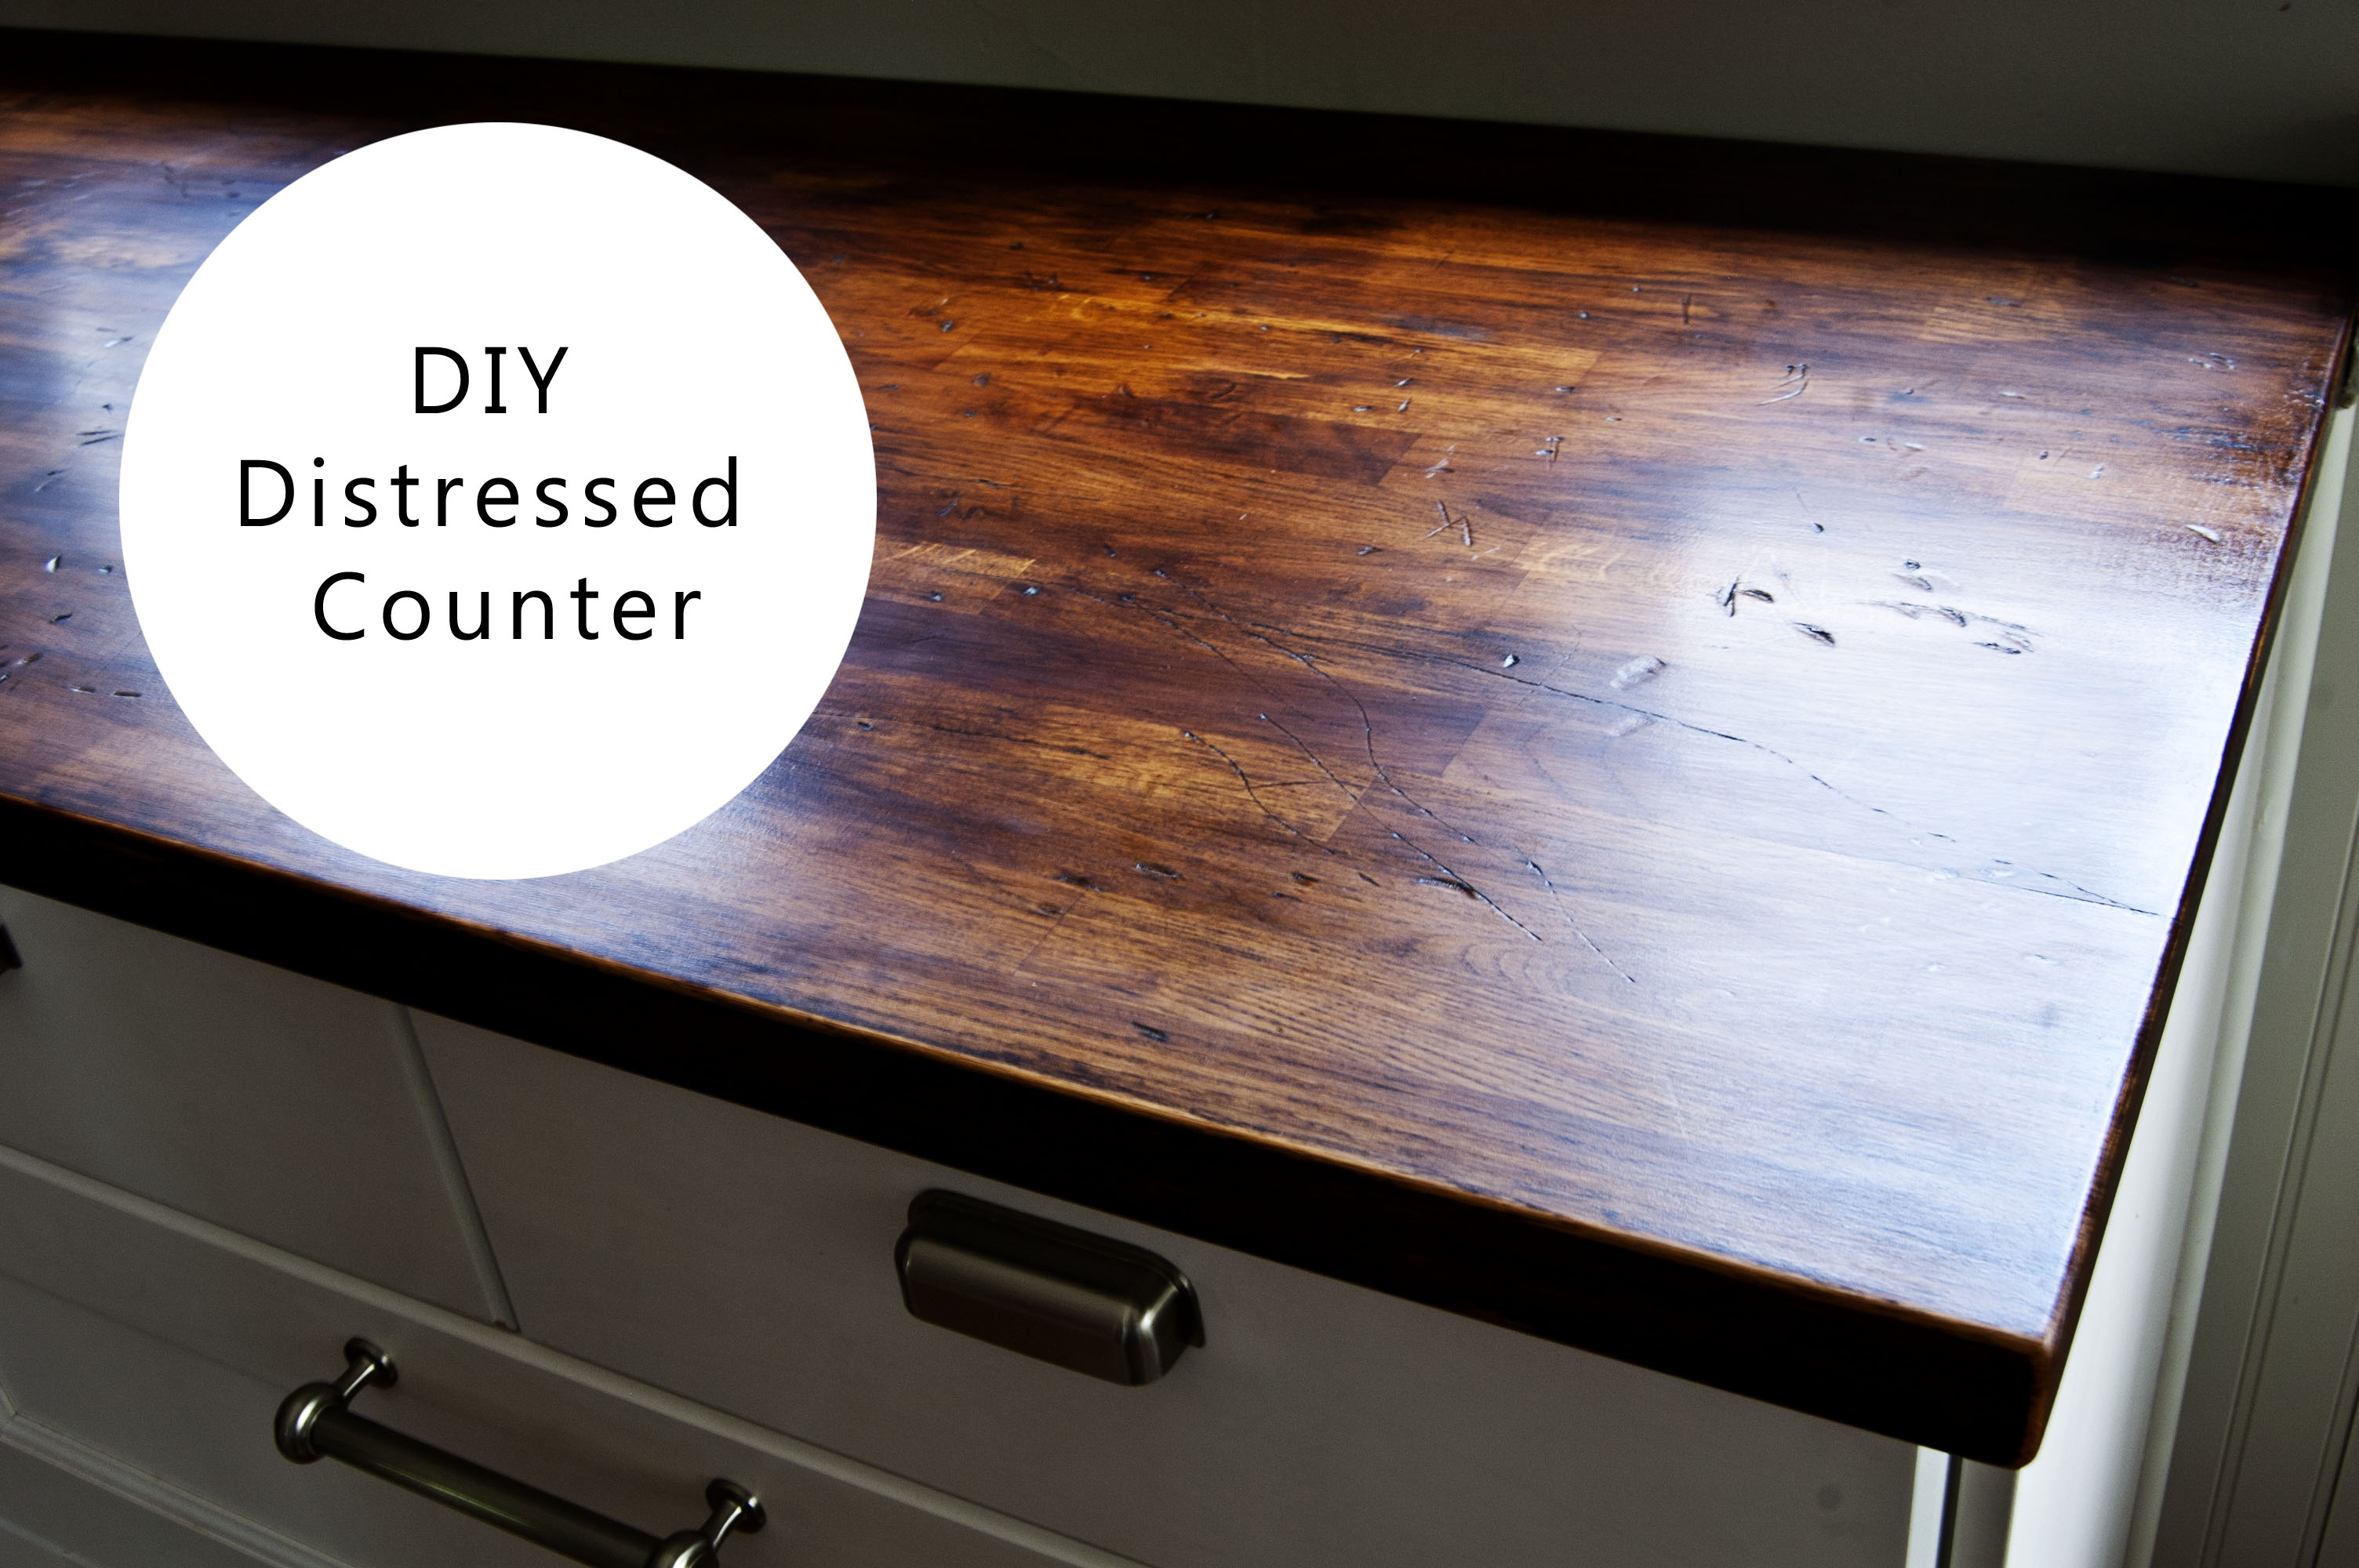 Diy distressed wood counter buckhouse for Installing butcher block countertops